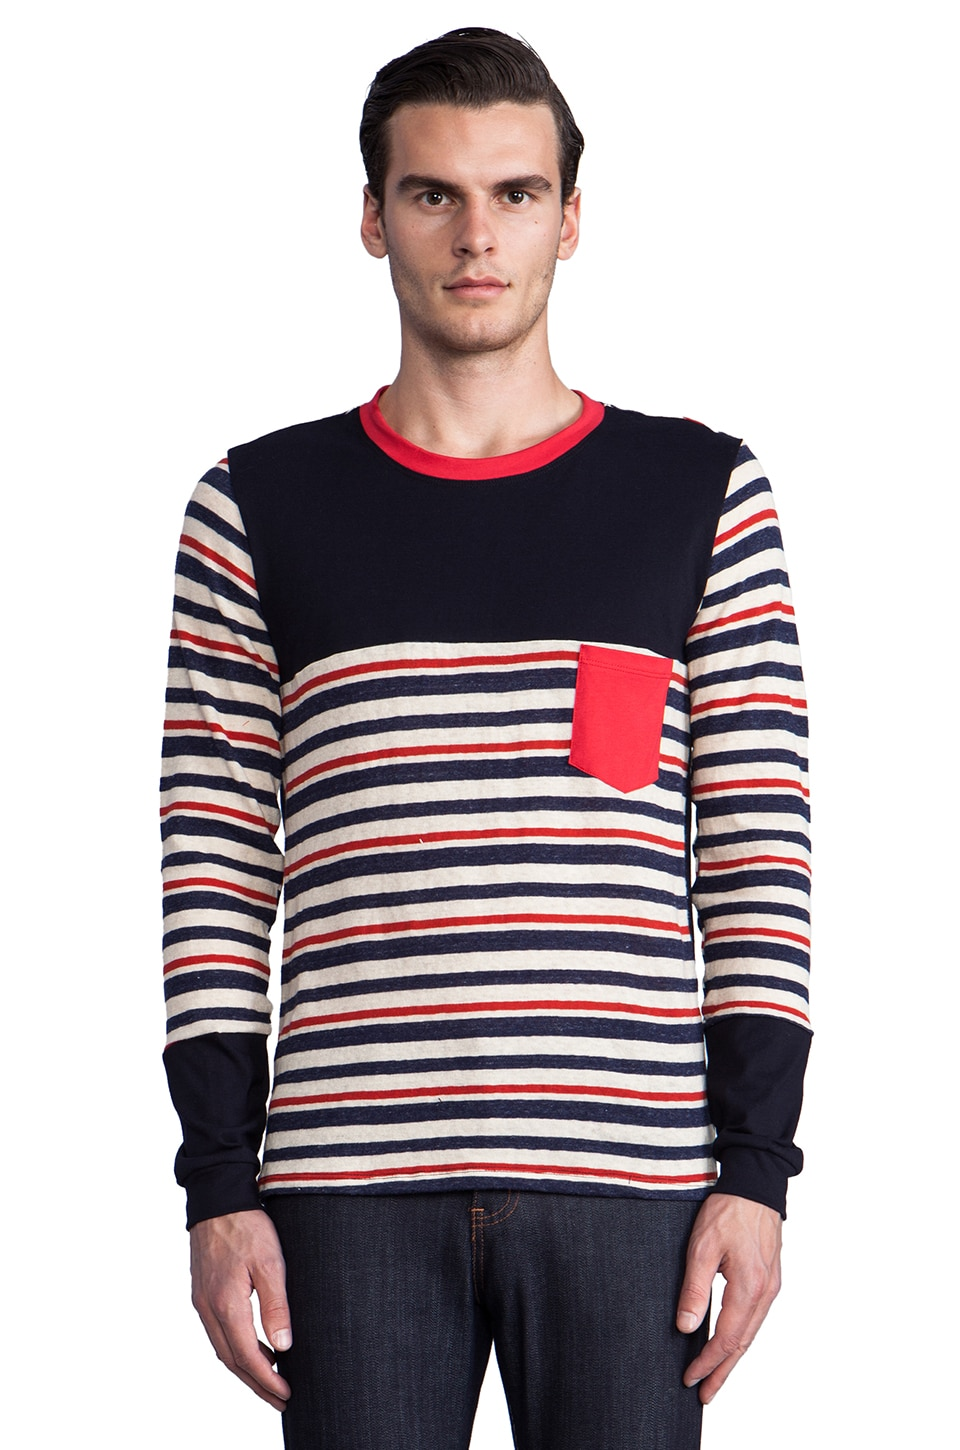 Still Good Theatral LS Tee in Multi Stripe